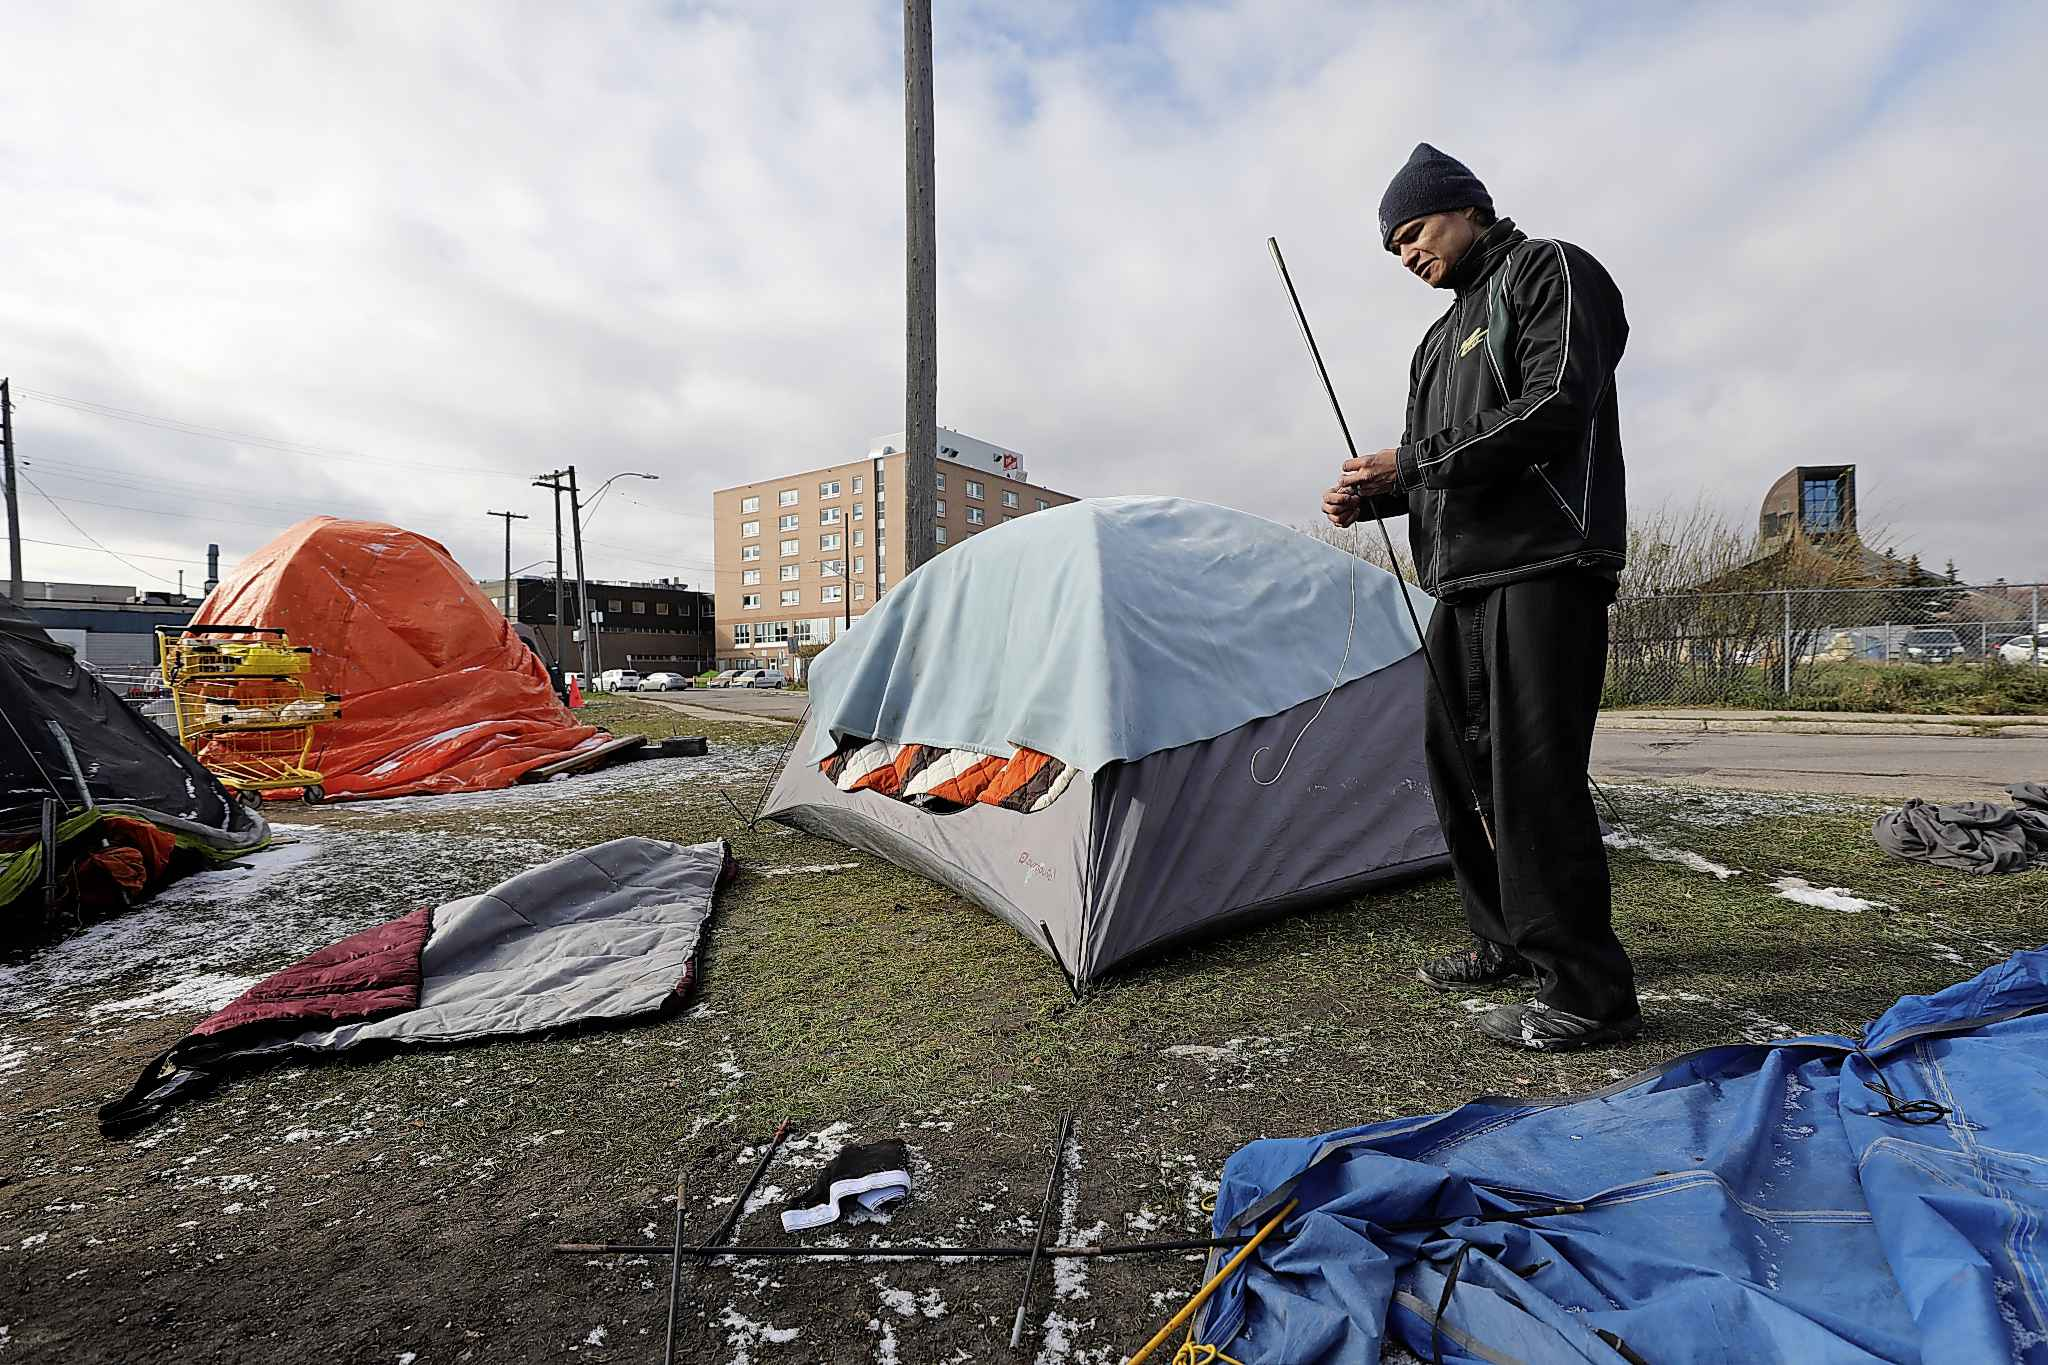 Johnny Guiboche, who has been homeless for many years, works on a tent that belongs to his god child near Thunderbird House, Monday.